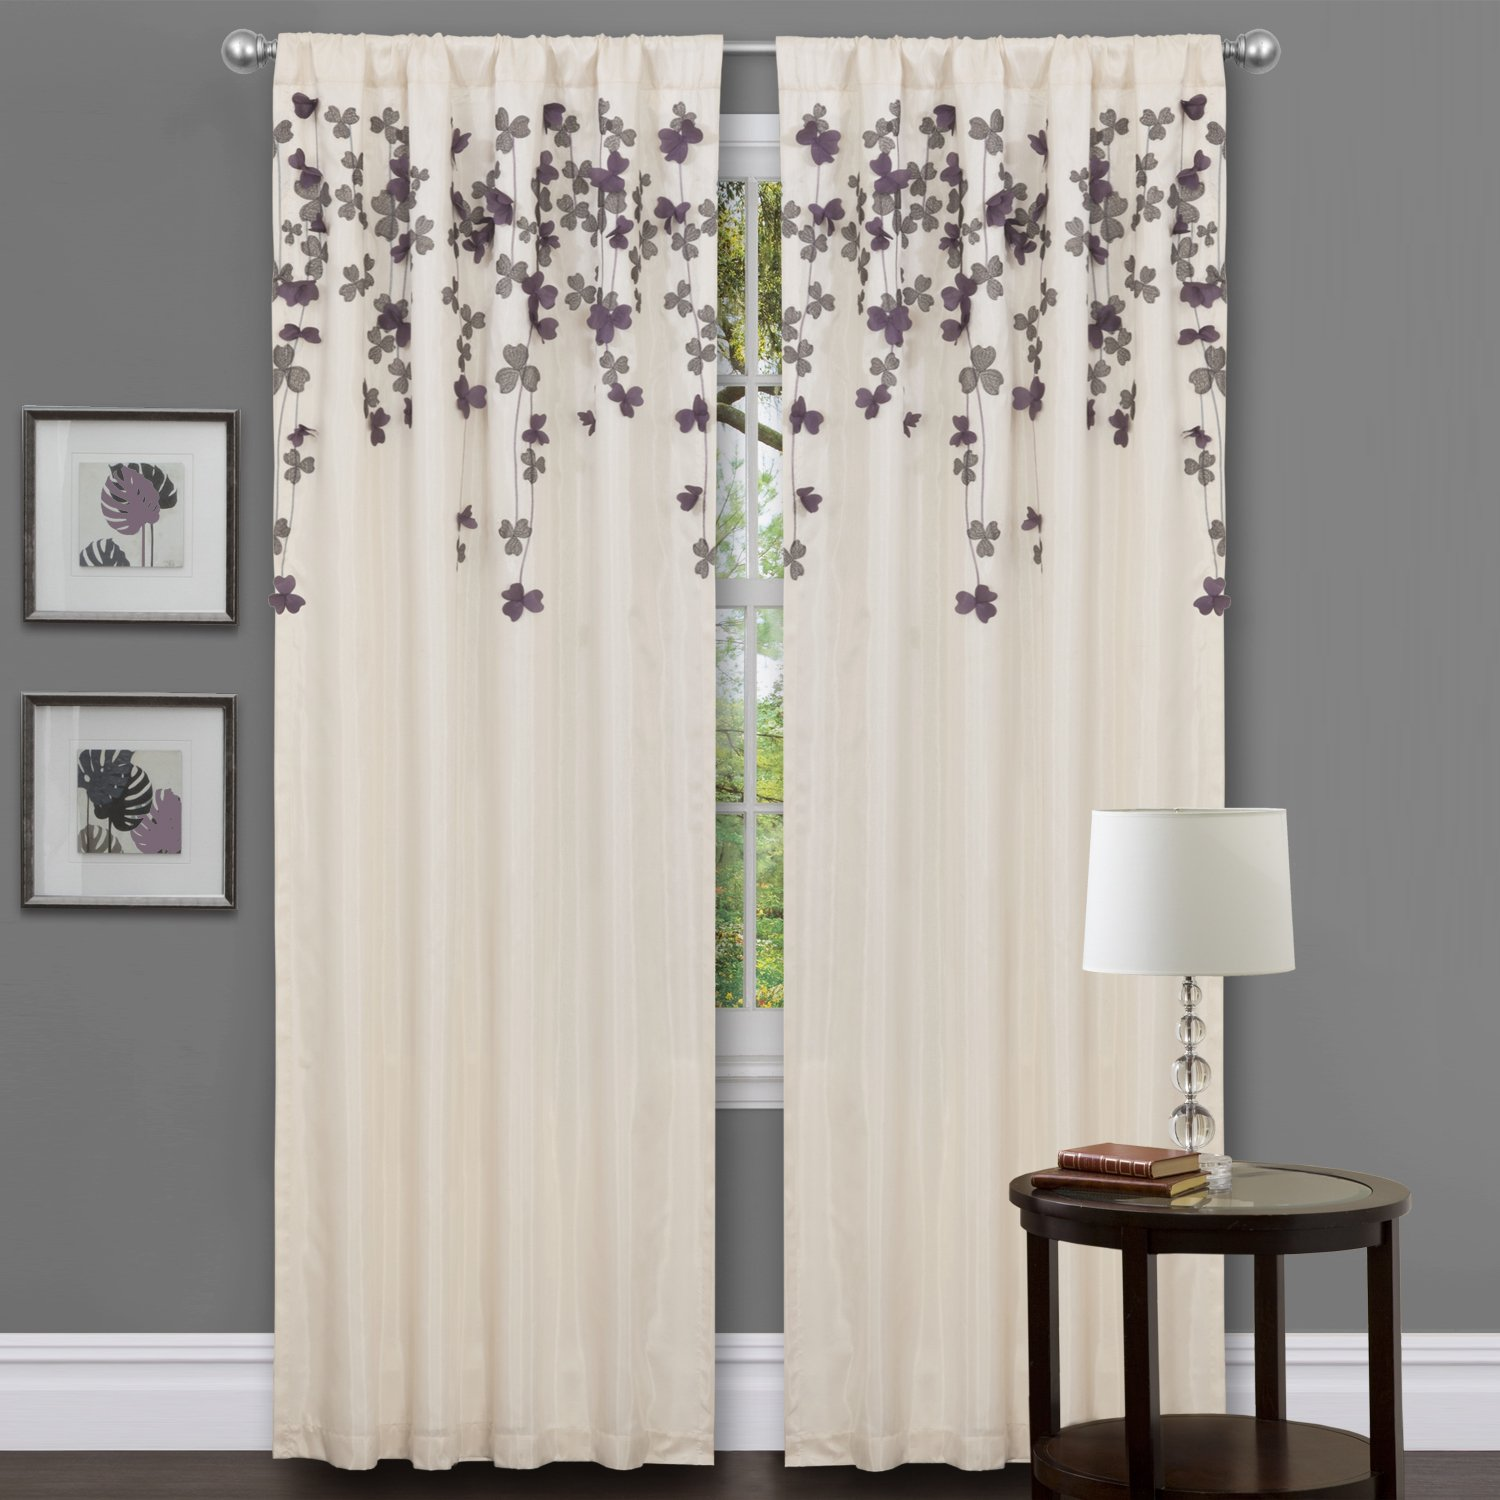 priscillas tie lace with edging madelyn curtains window products natural on curtain victorian slate and priscilla bow backs ruffled